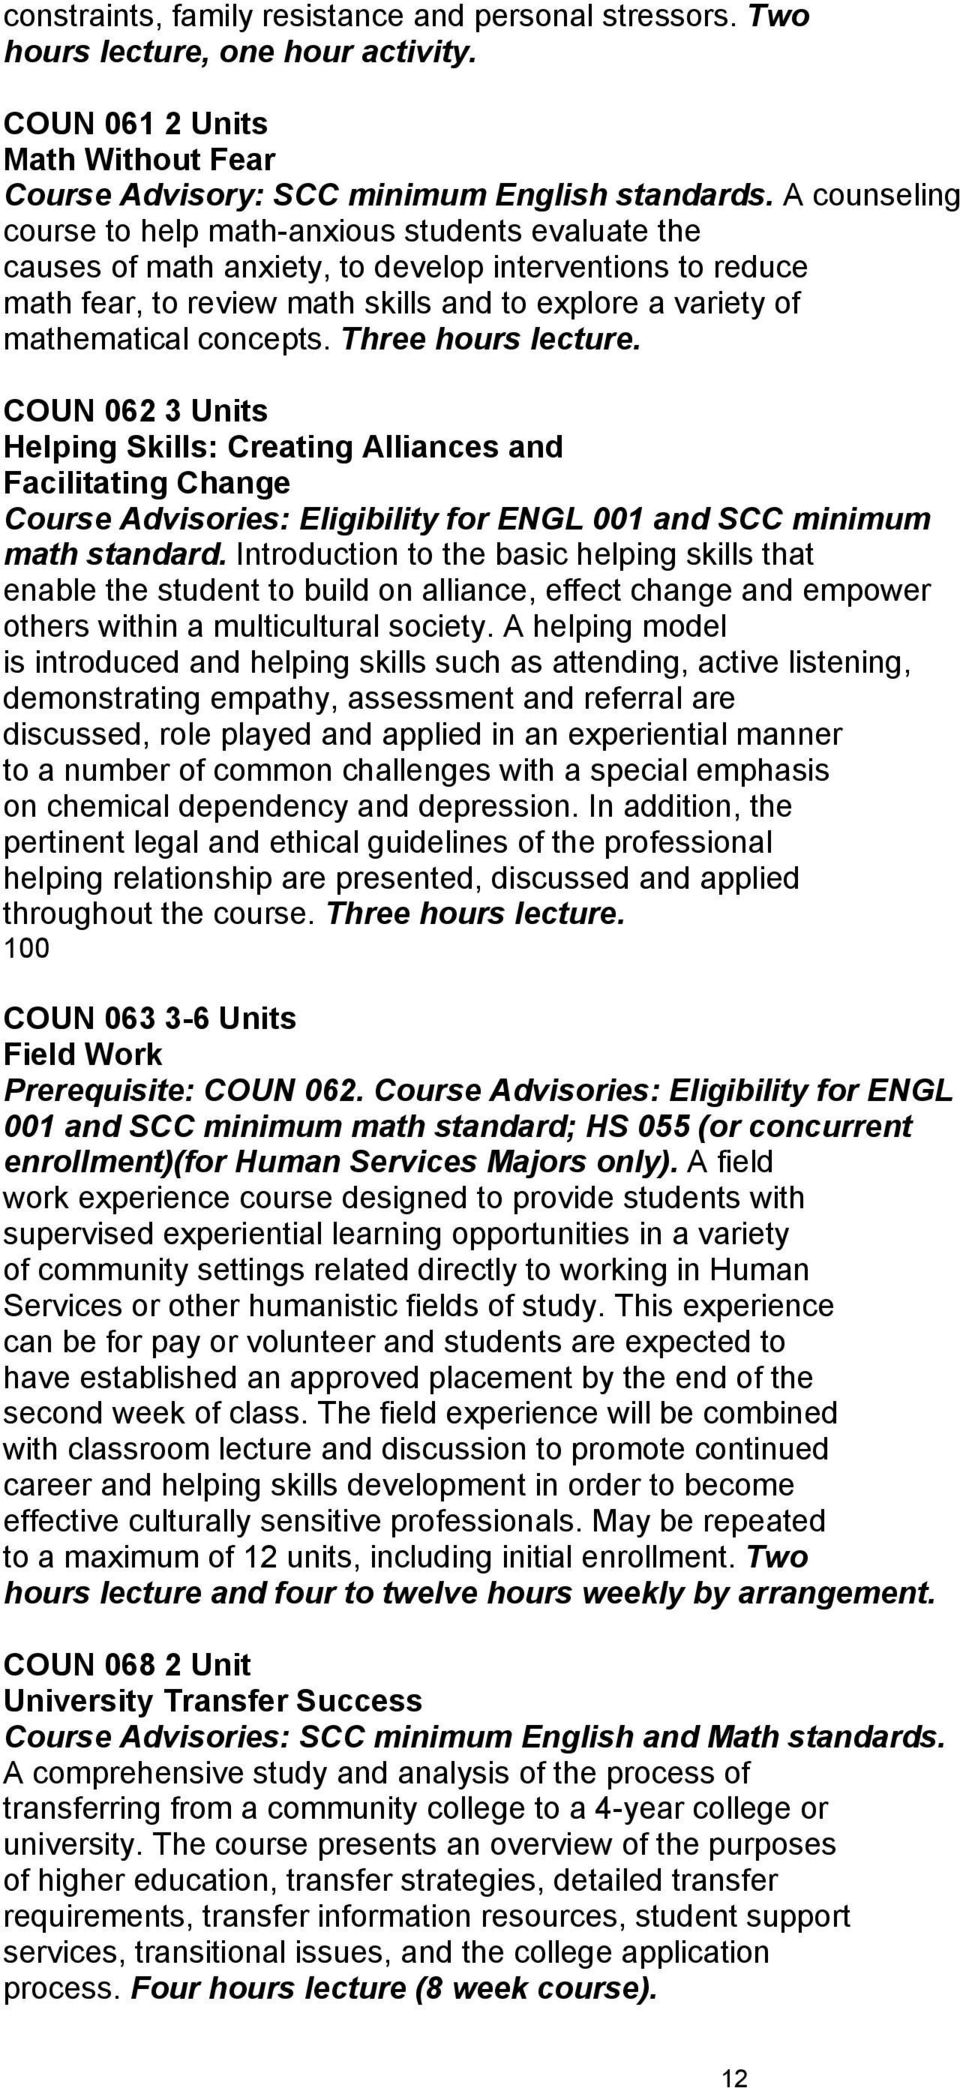 concepts. Three hours lecture. COUN 062 3 Units Helping Skills: Creating Alliances and Facilitating Change Course Advisories: Eligibility for ENGL 001 and SCC minimum math standard.